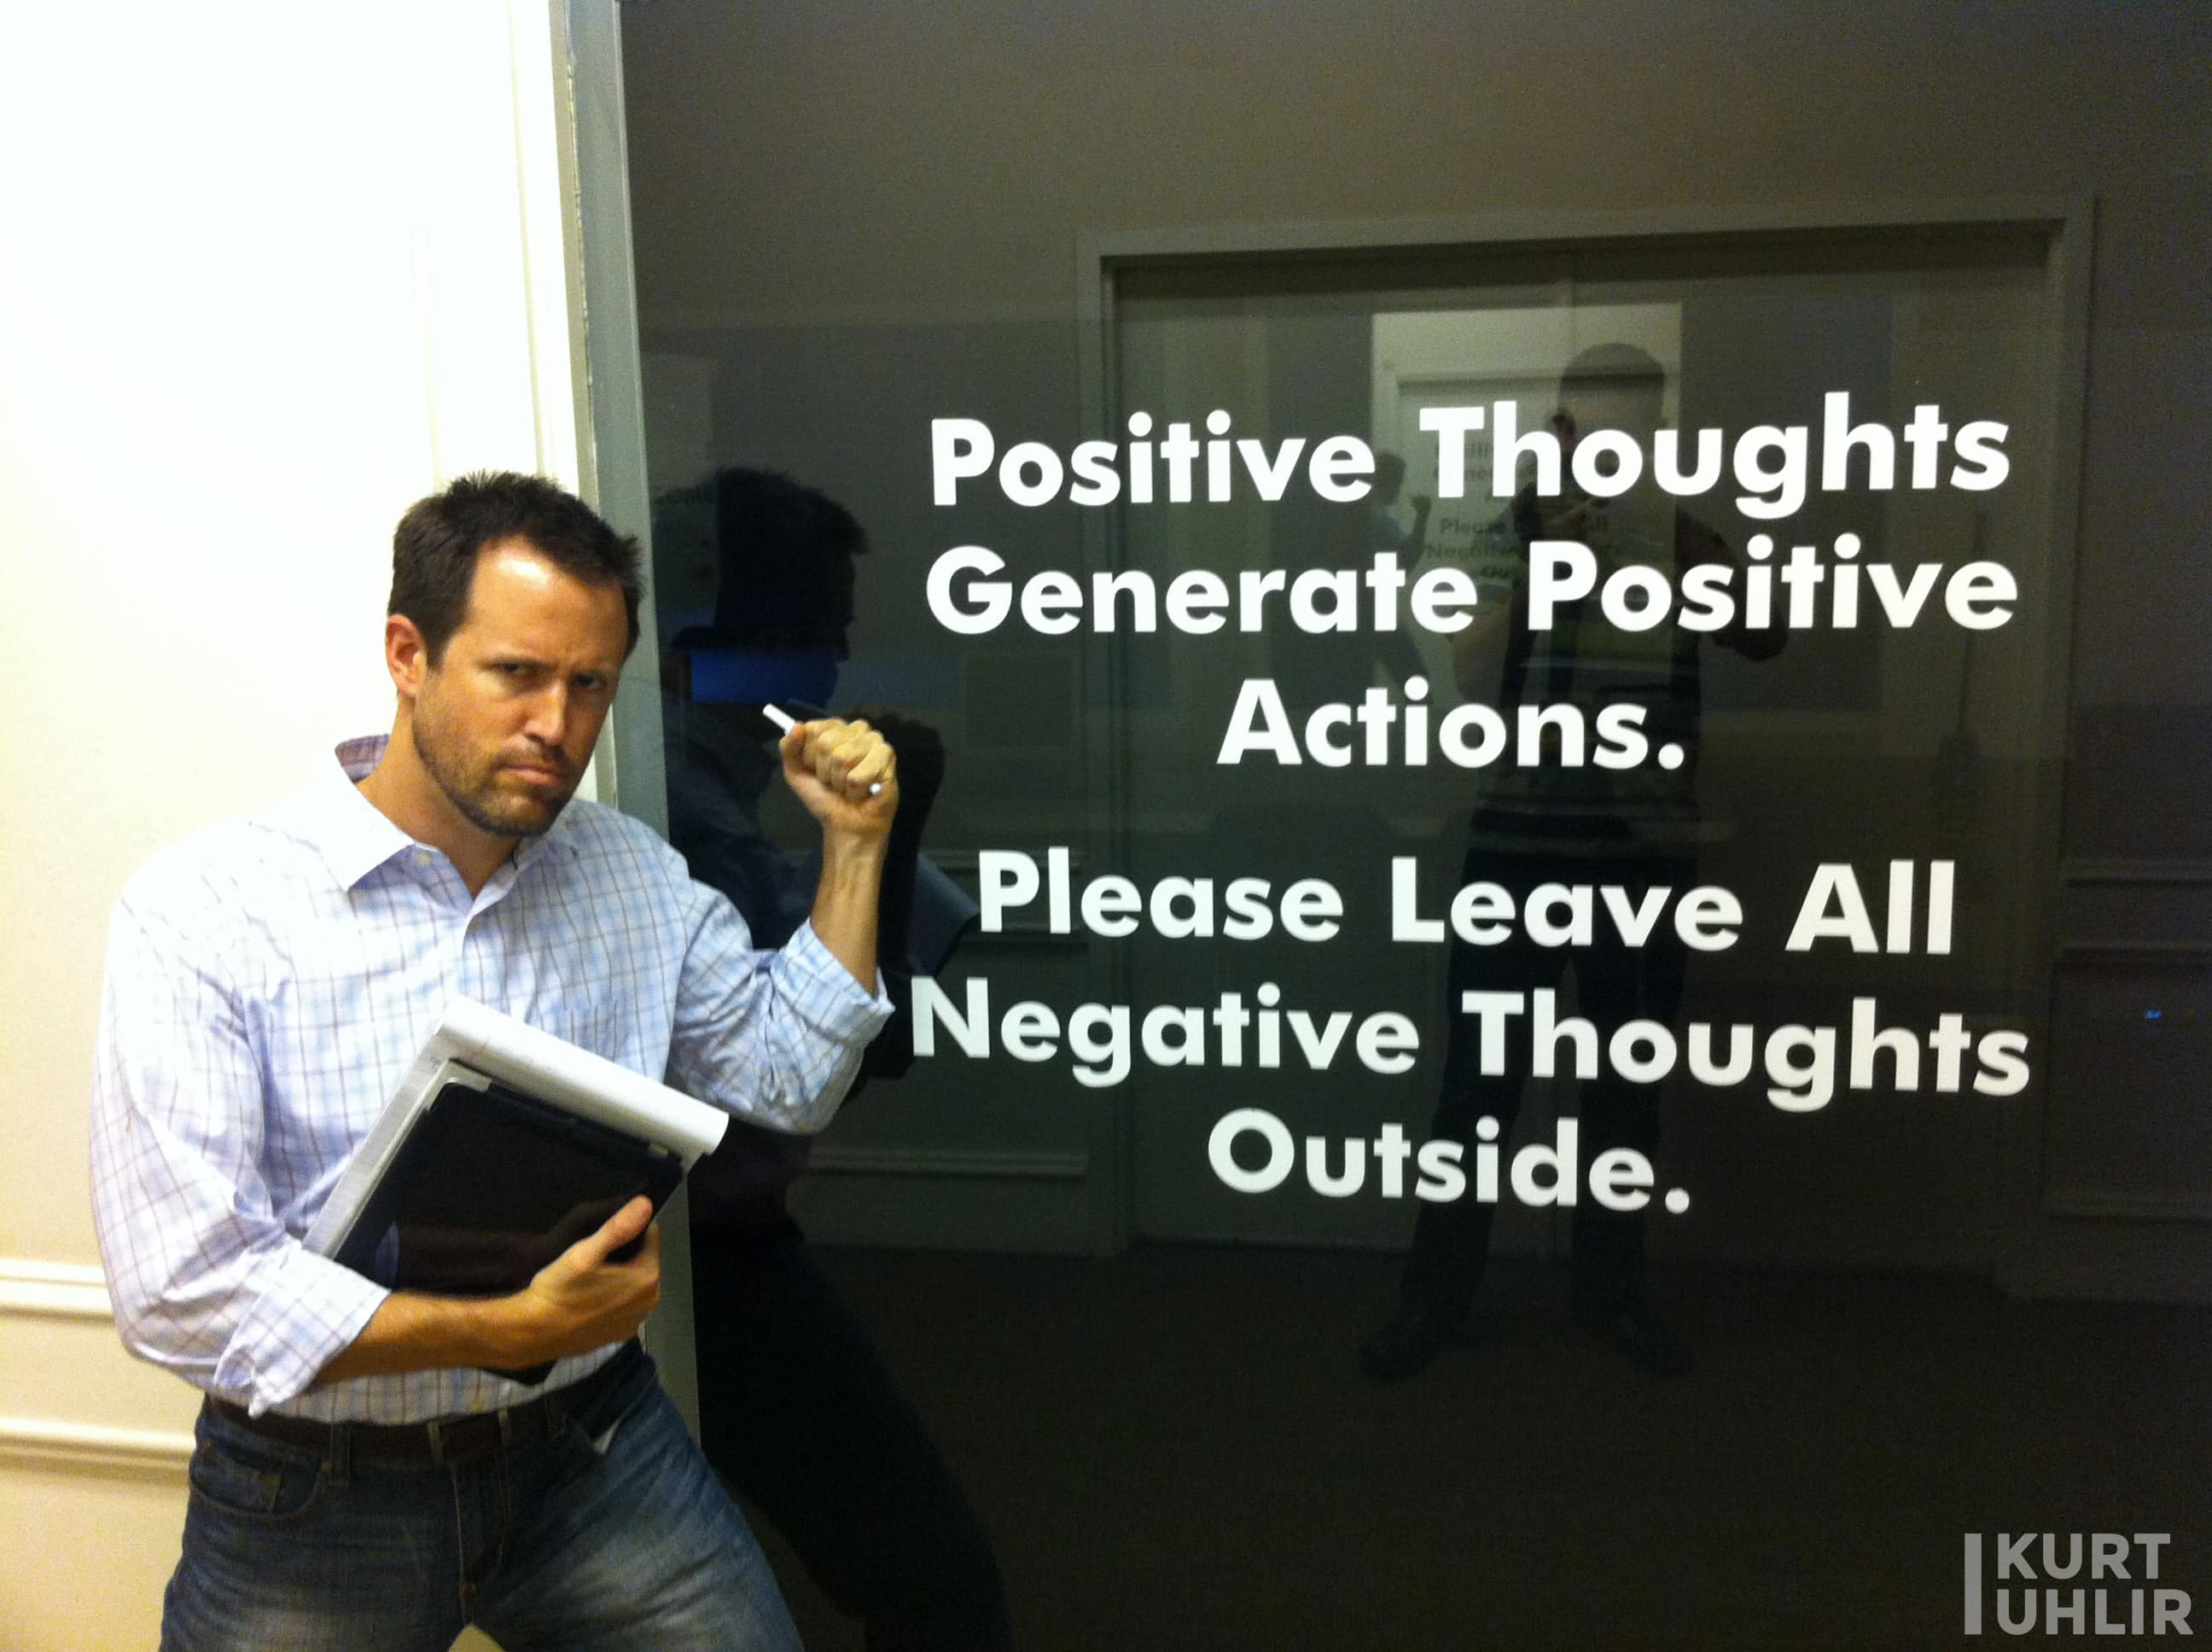 Kurt Uhlir having fun while doing customer discovery. Sign - Positive thoughts generate postive actions. Please leave all negative thoughts outside.